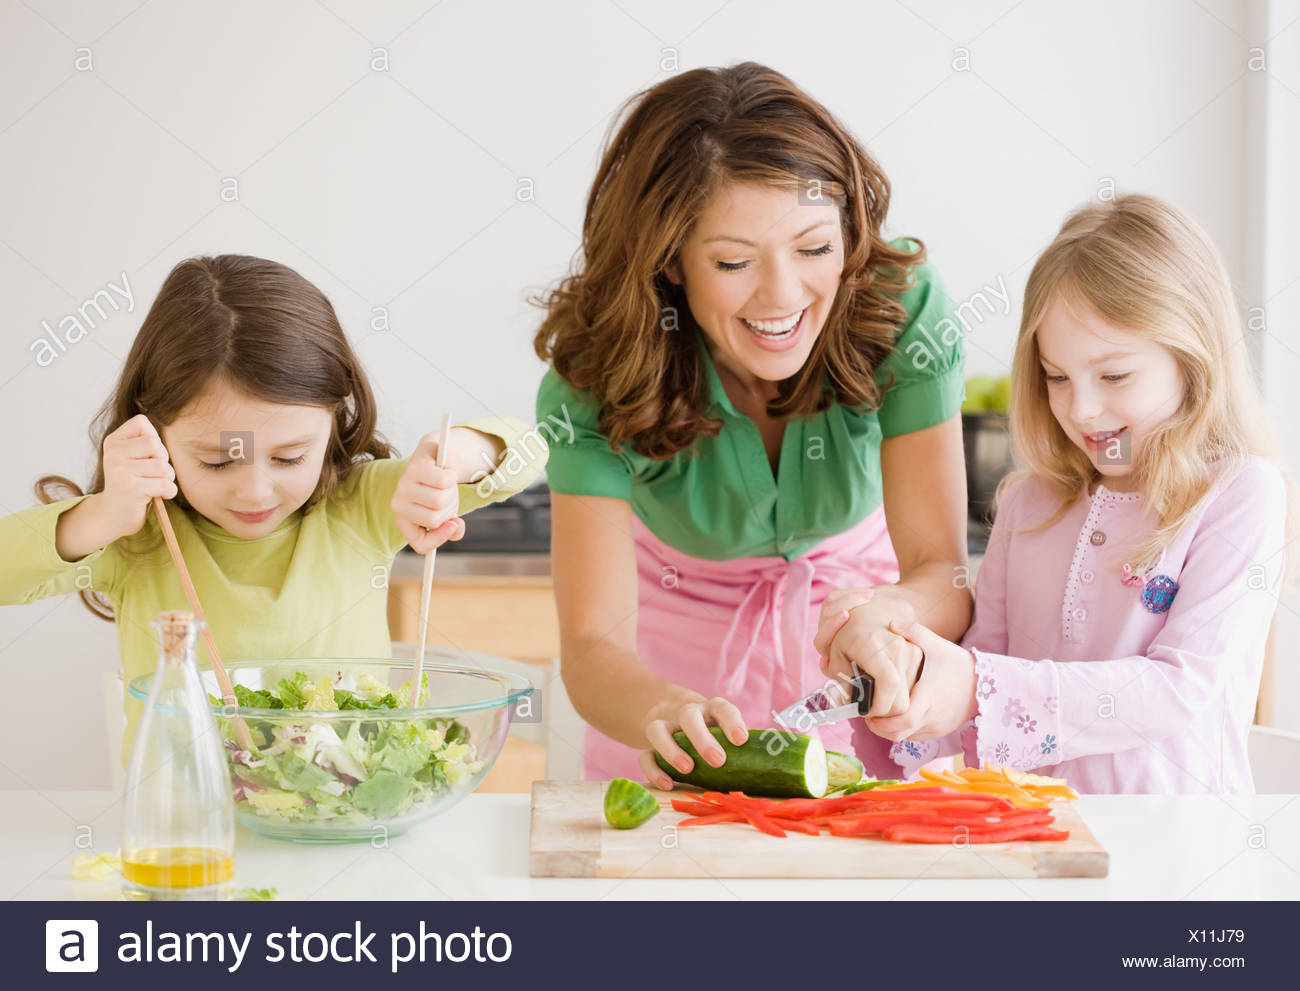 Mother and daughters preparing food - Stock Image